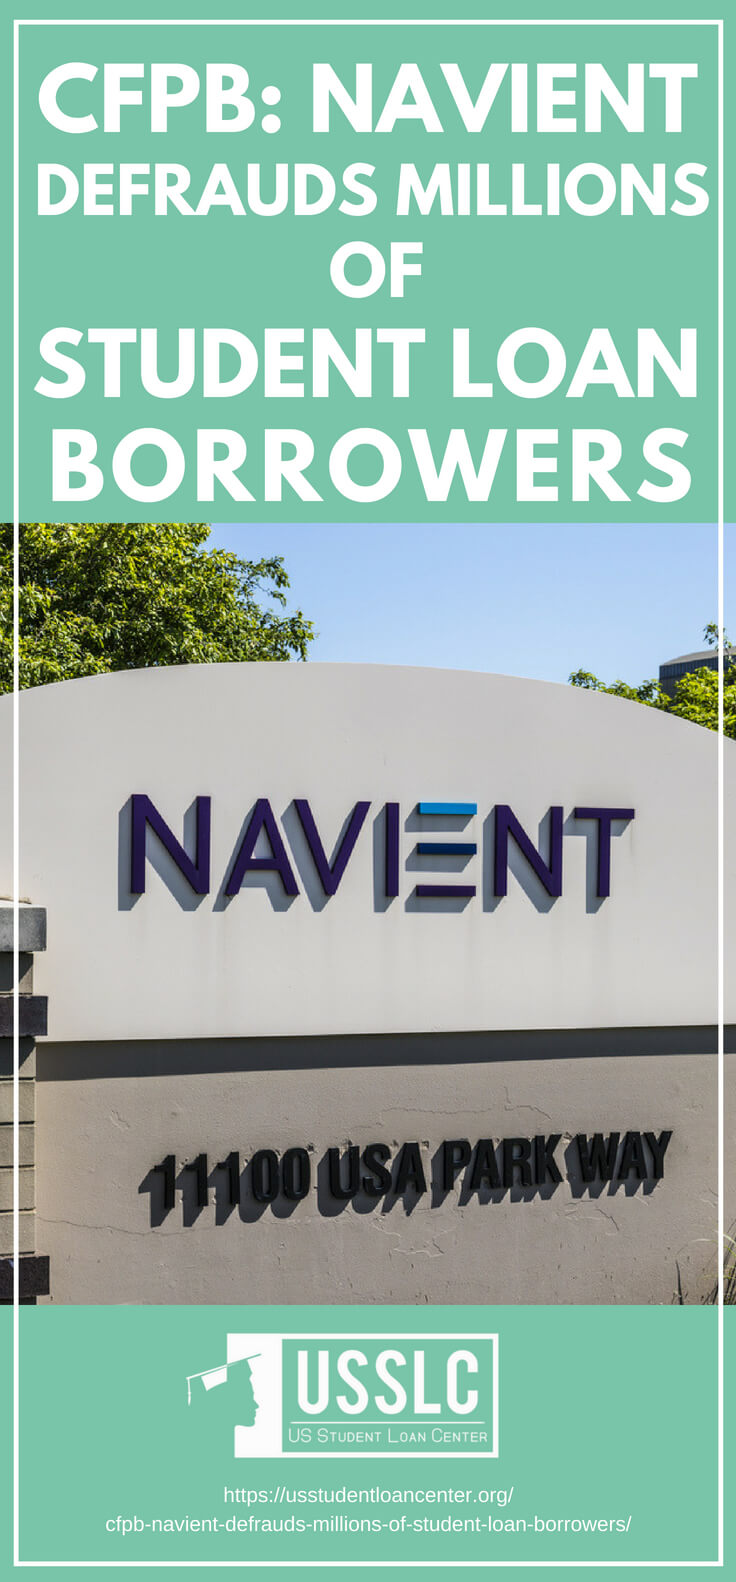 PLACARD | CFPB: Navient Defrauds Millions of Student Loan Borrowers